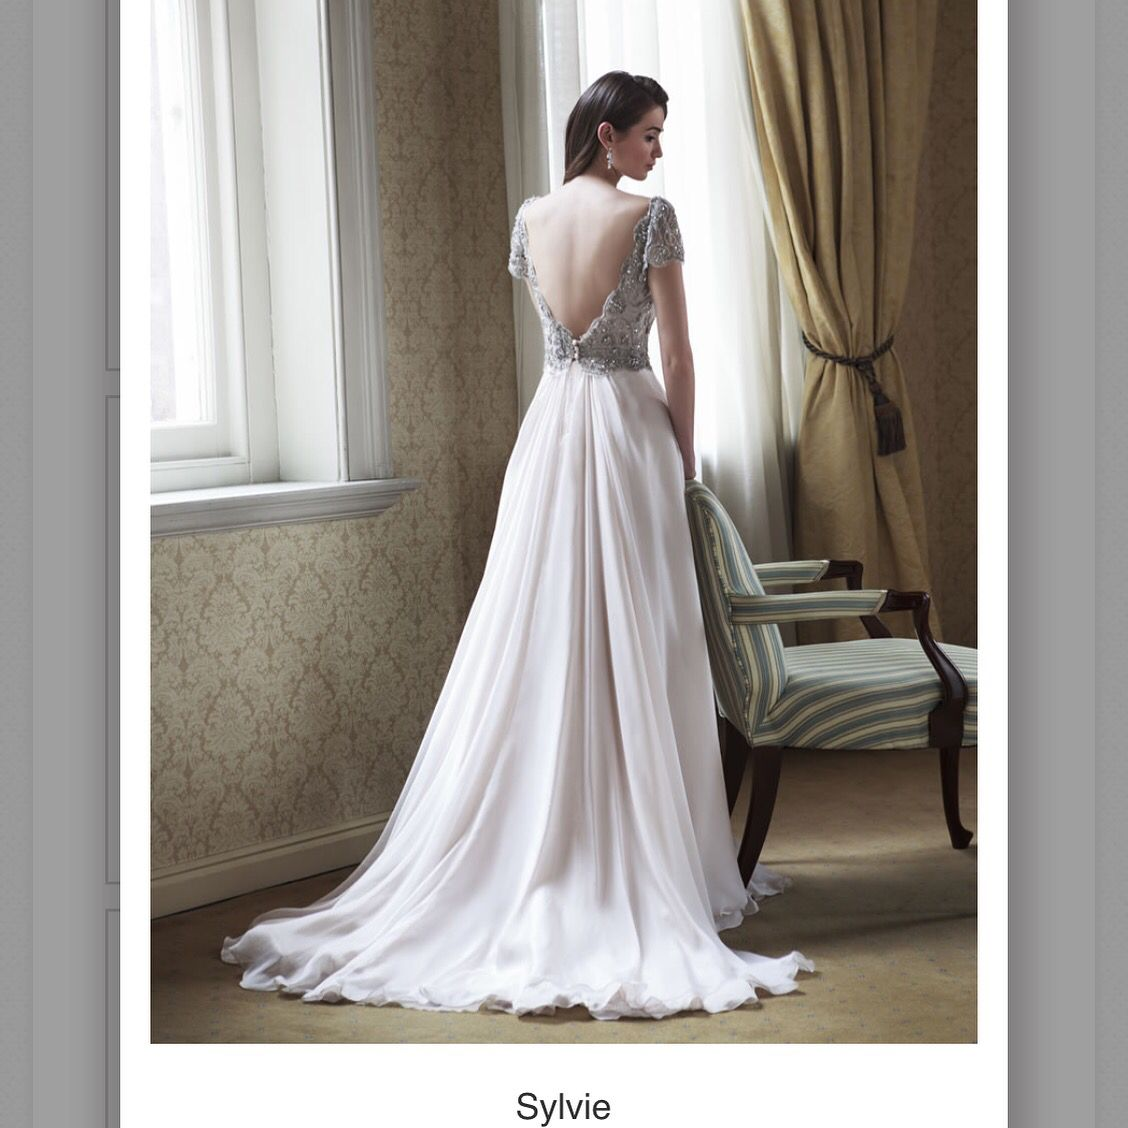 Couture Wedding Gowns Sydney: Rhonda Hemmingway Couture Gown (With Images)